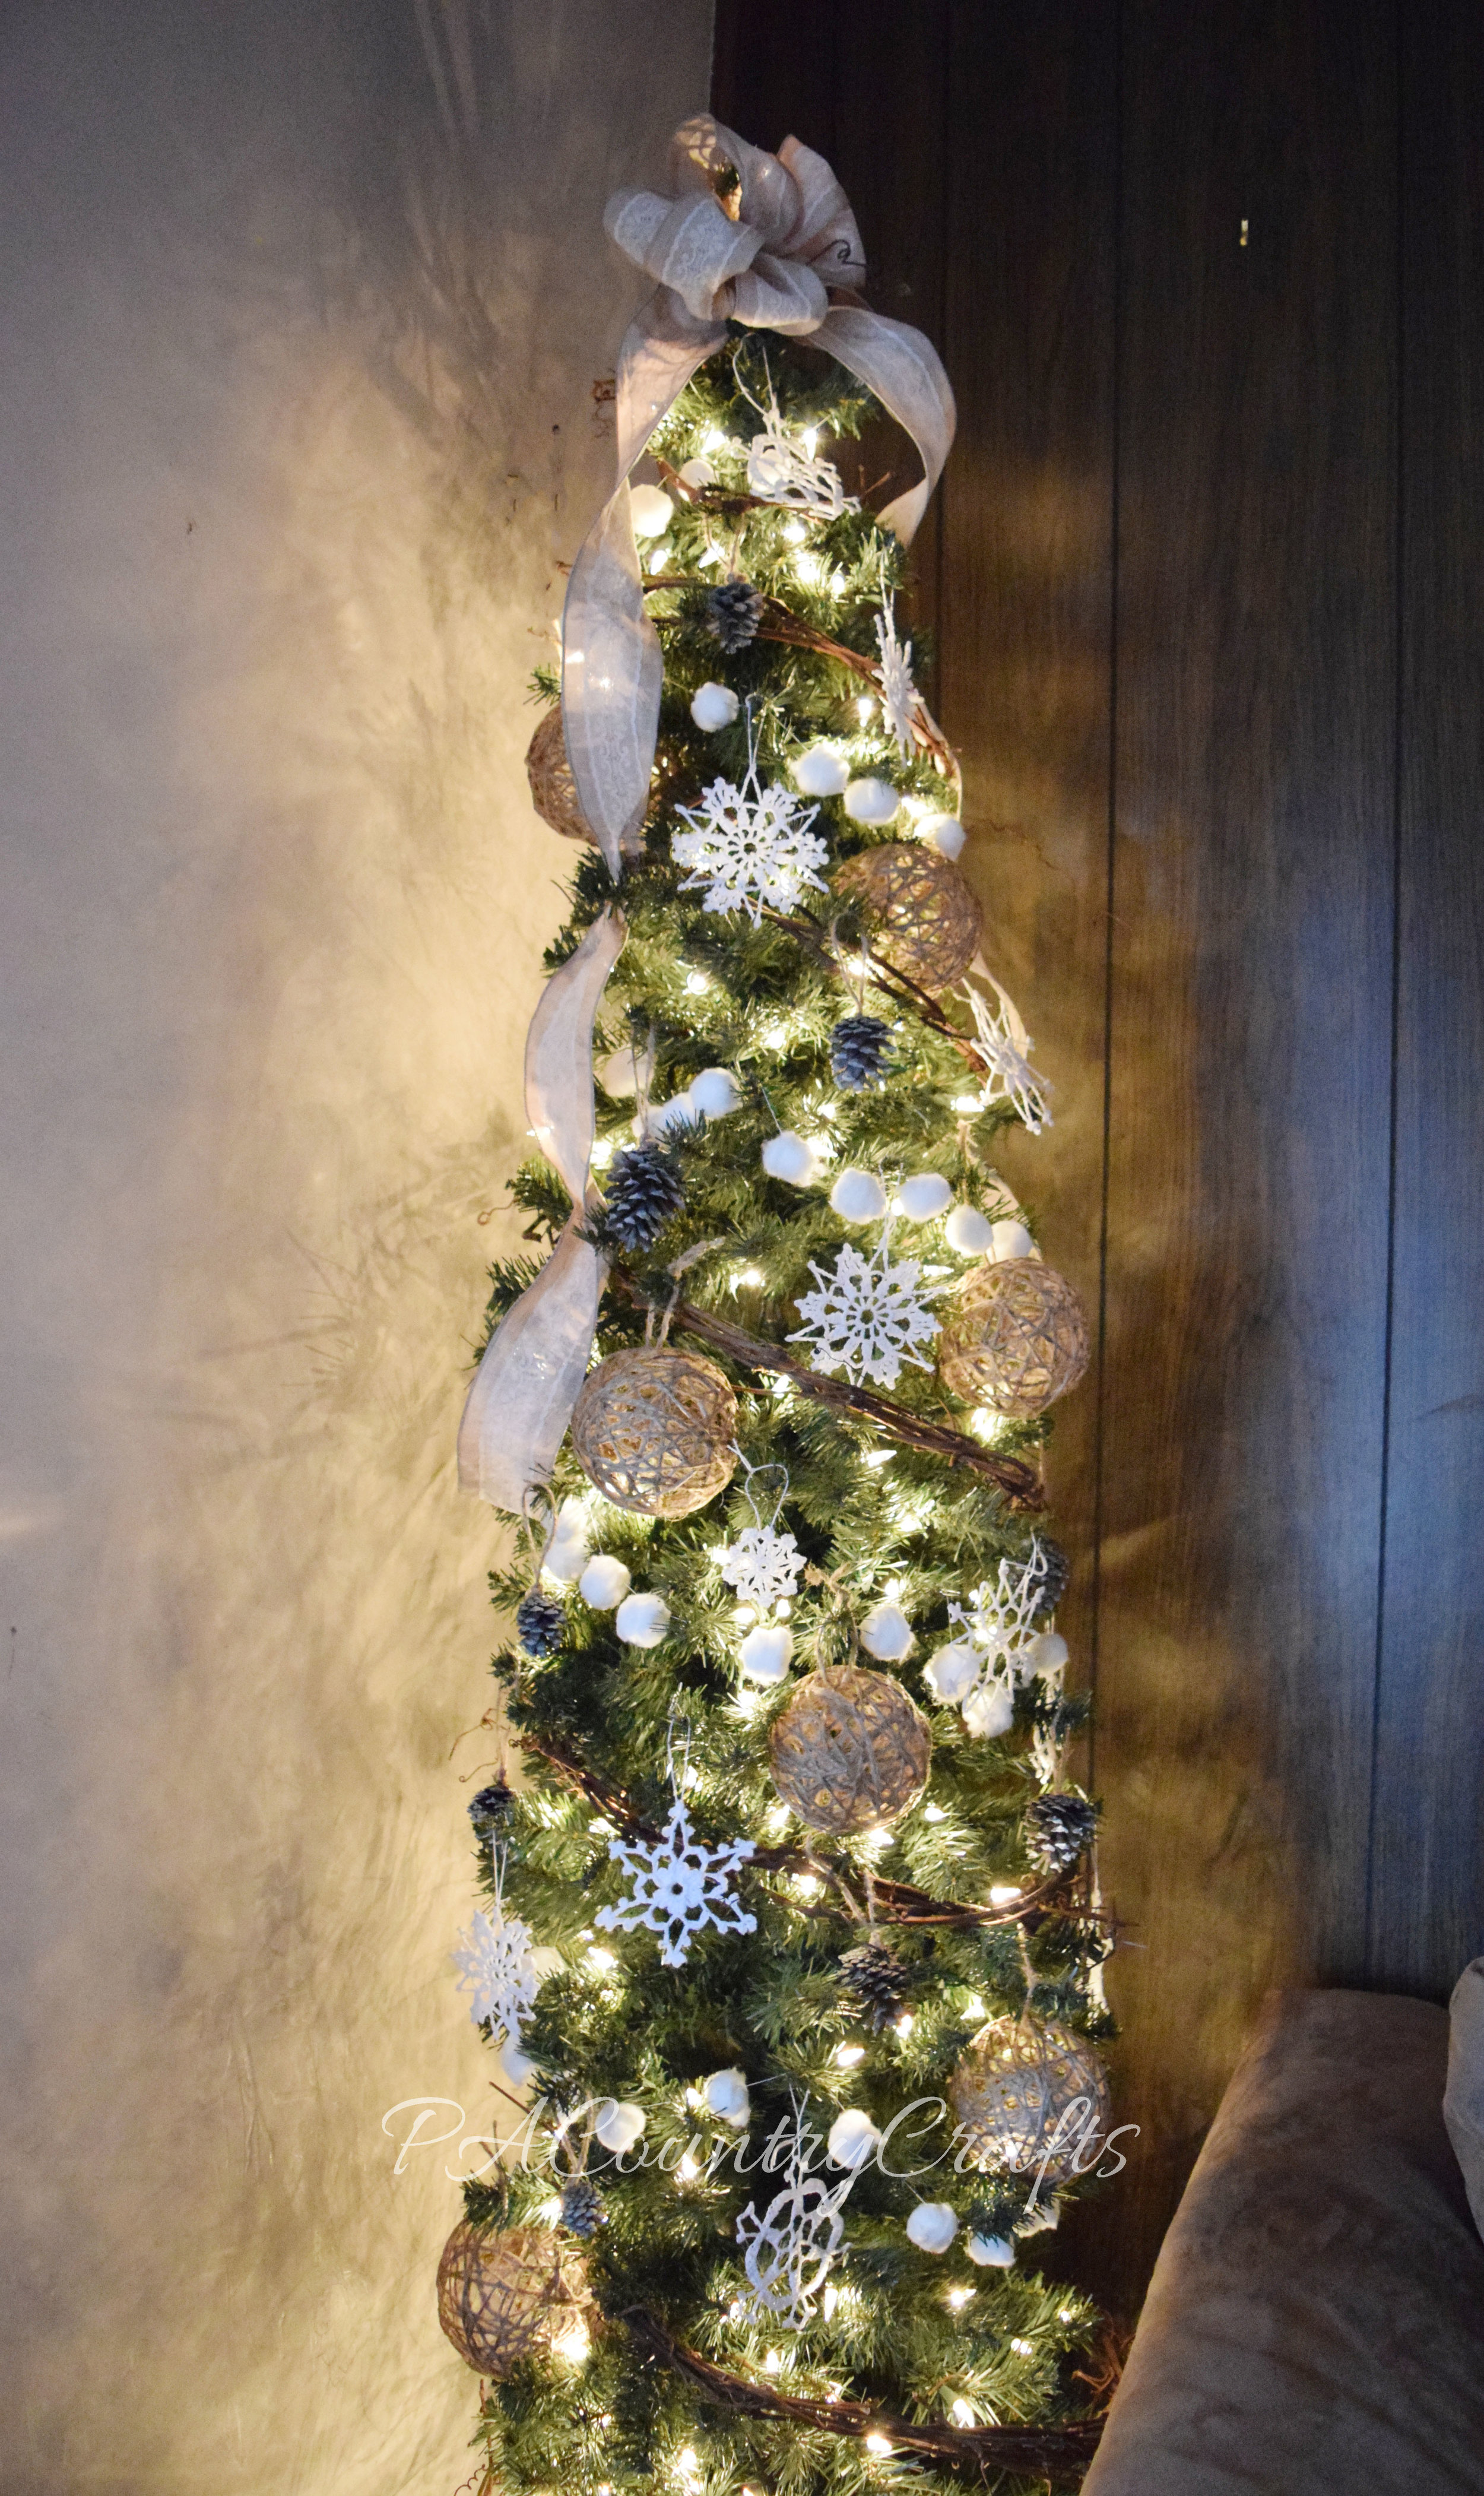 A DIY rustic, winter tree with homemade decorations...